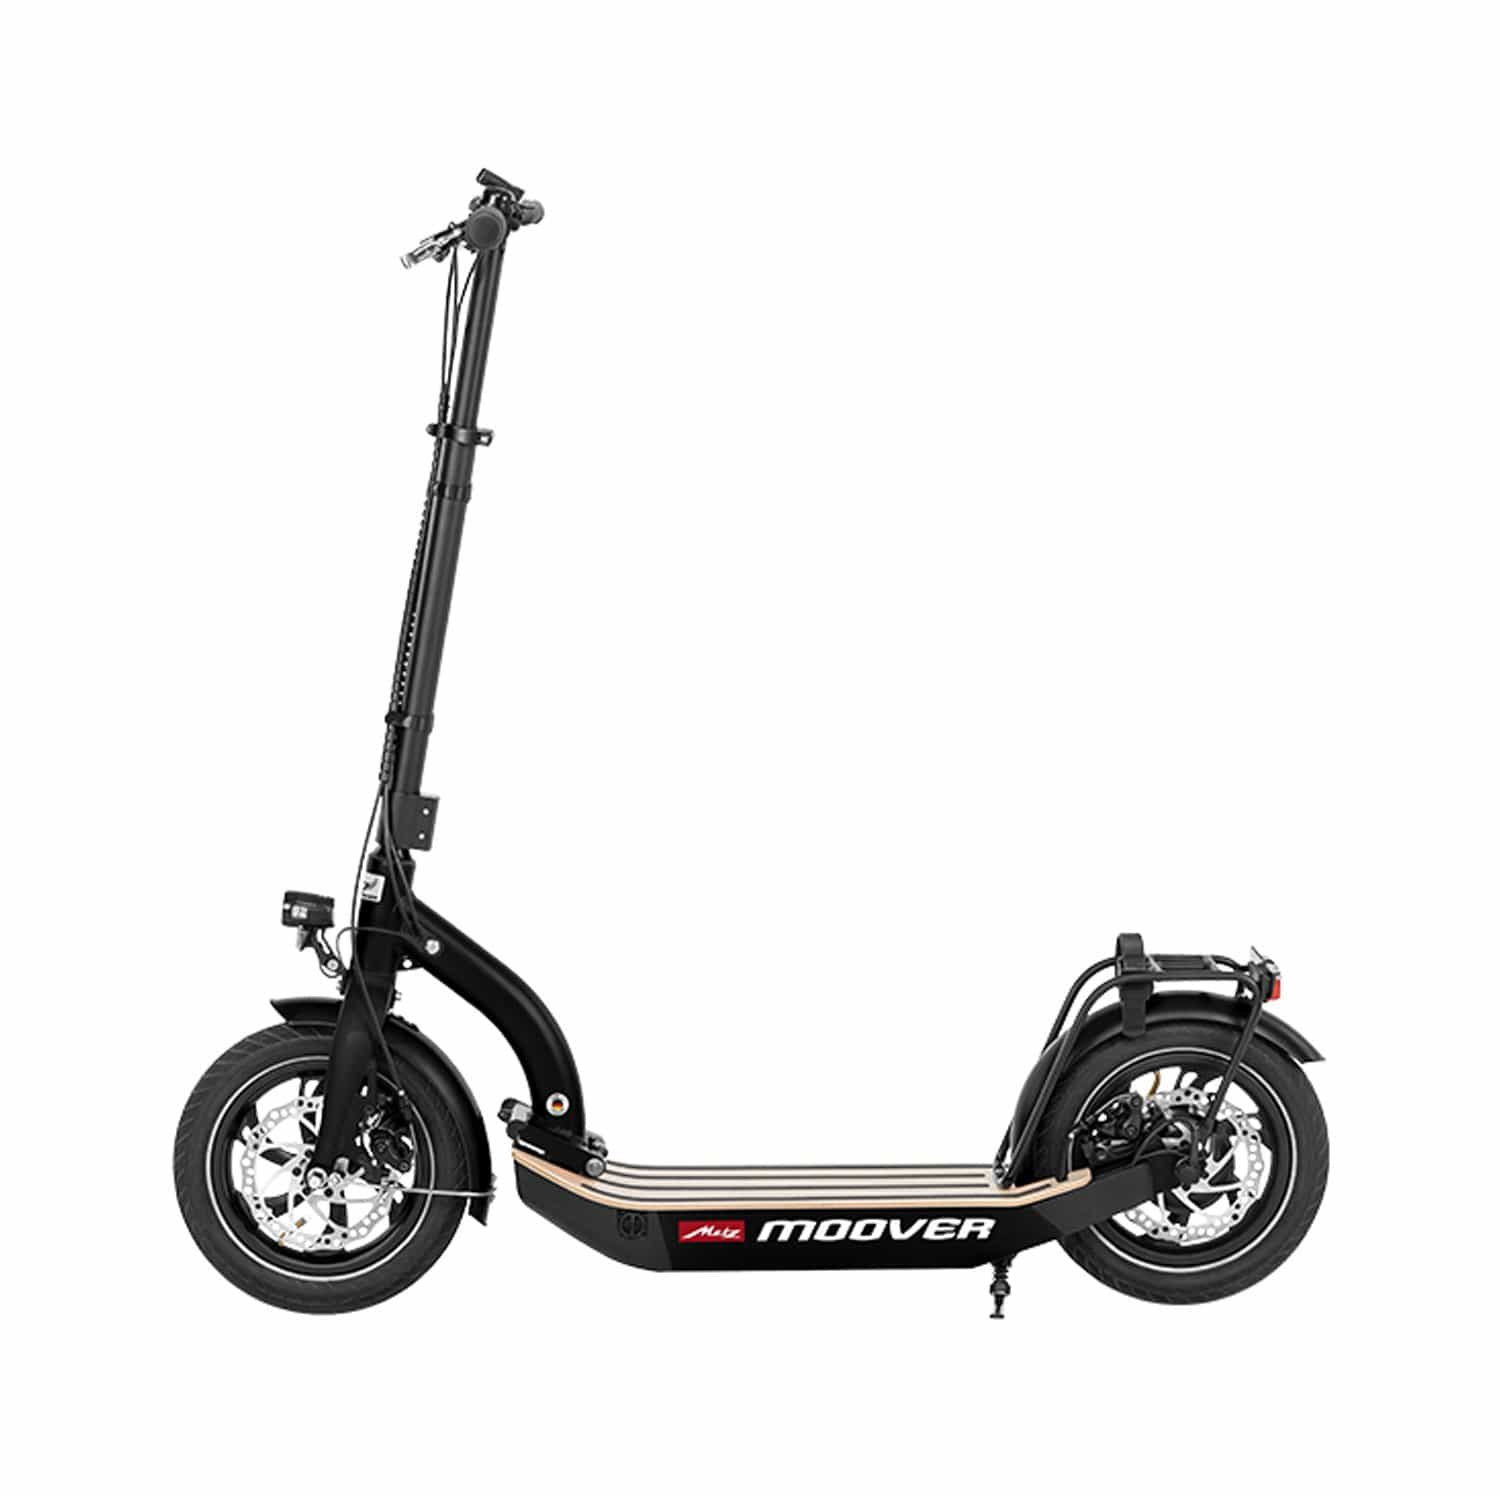 Metz Moover - 500w Electric Scooter - Beyond Scooters